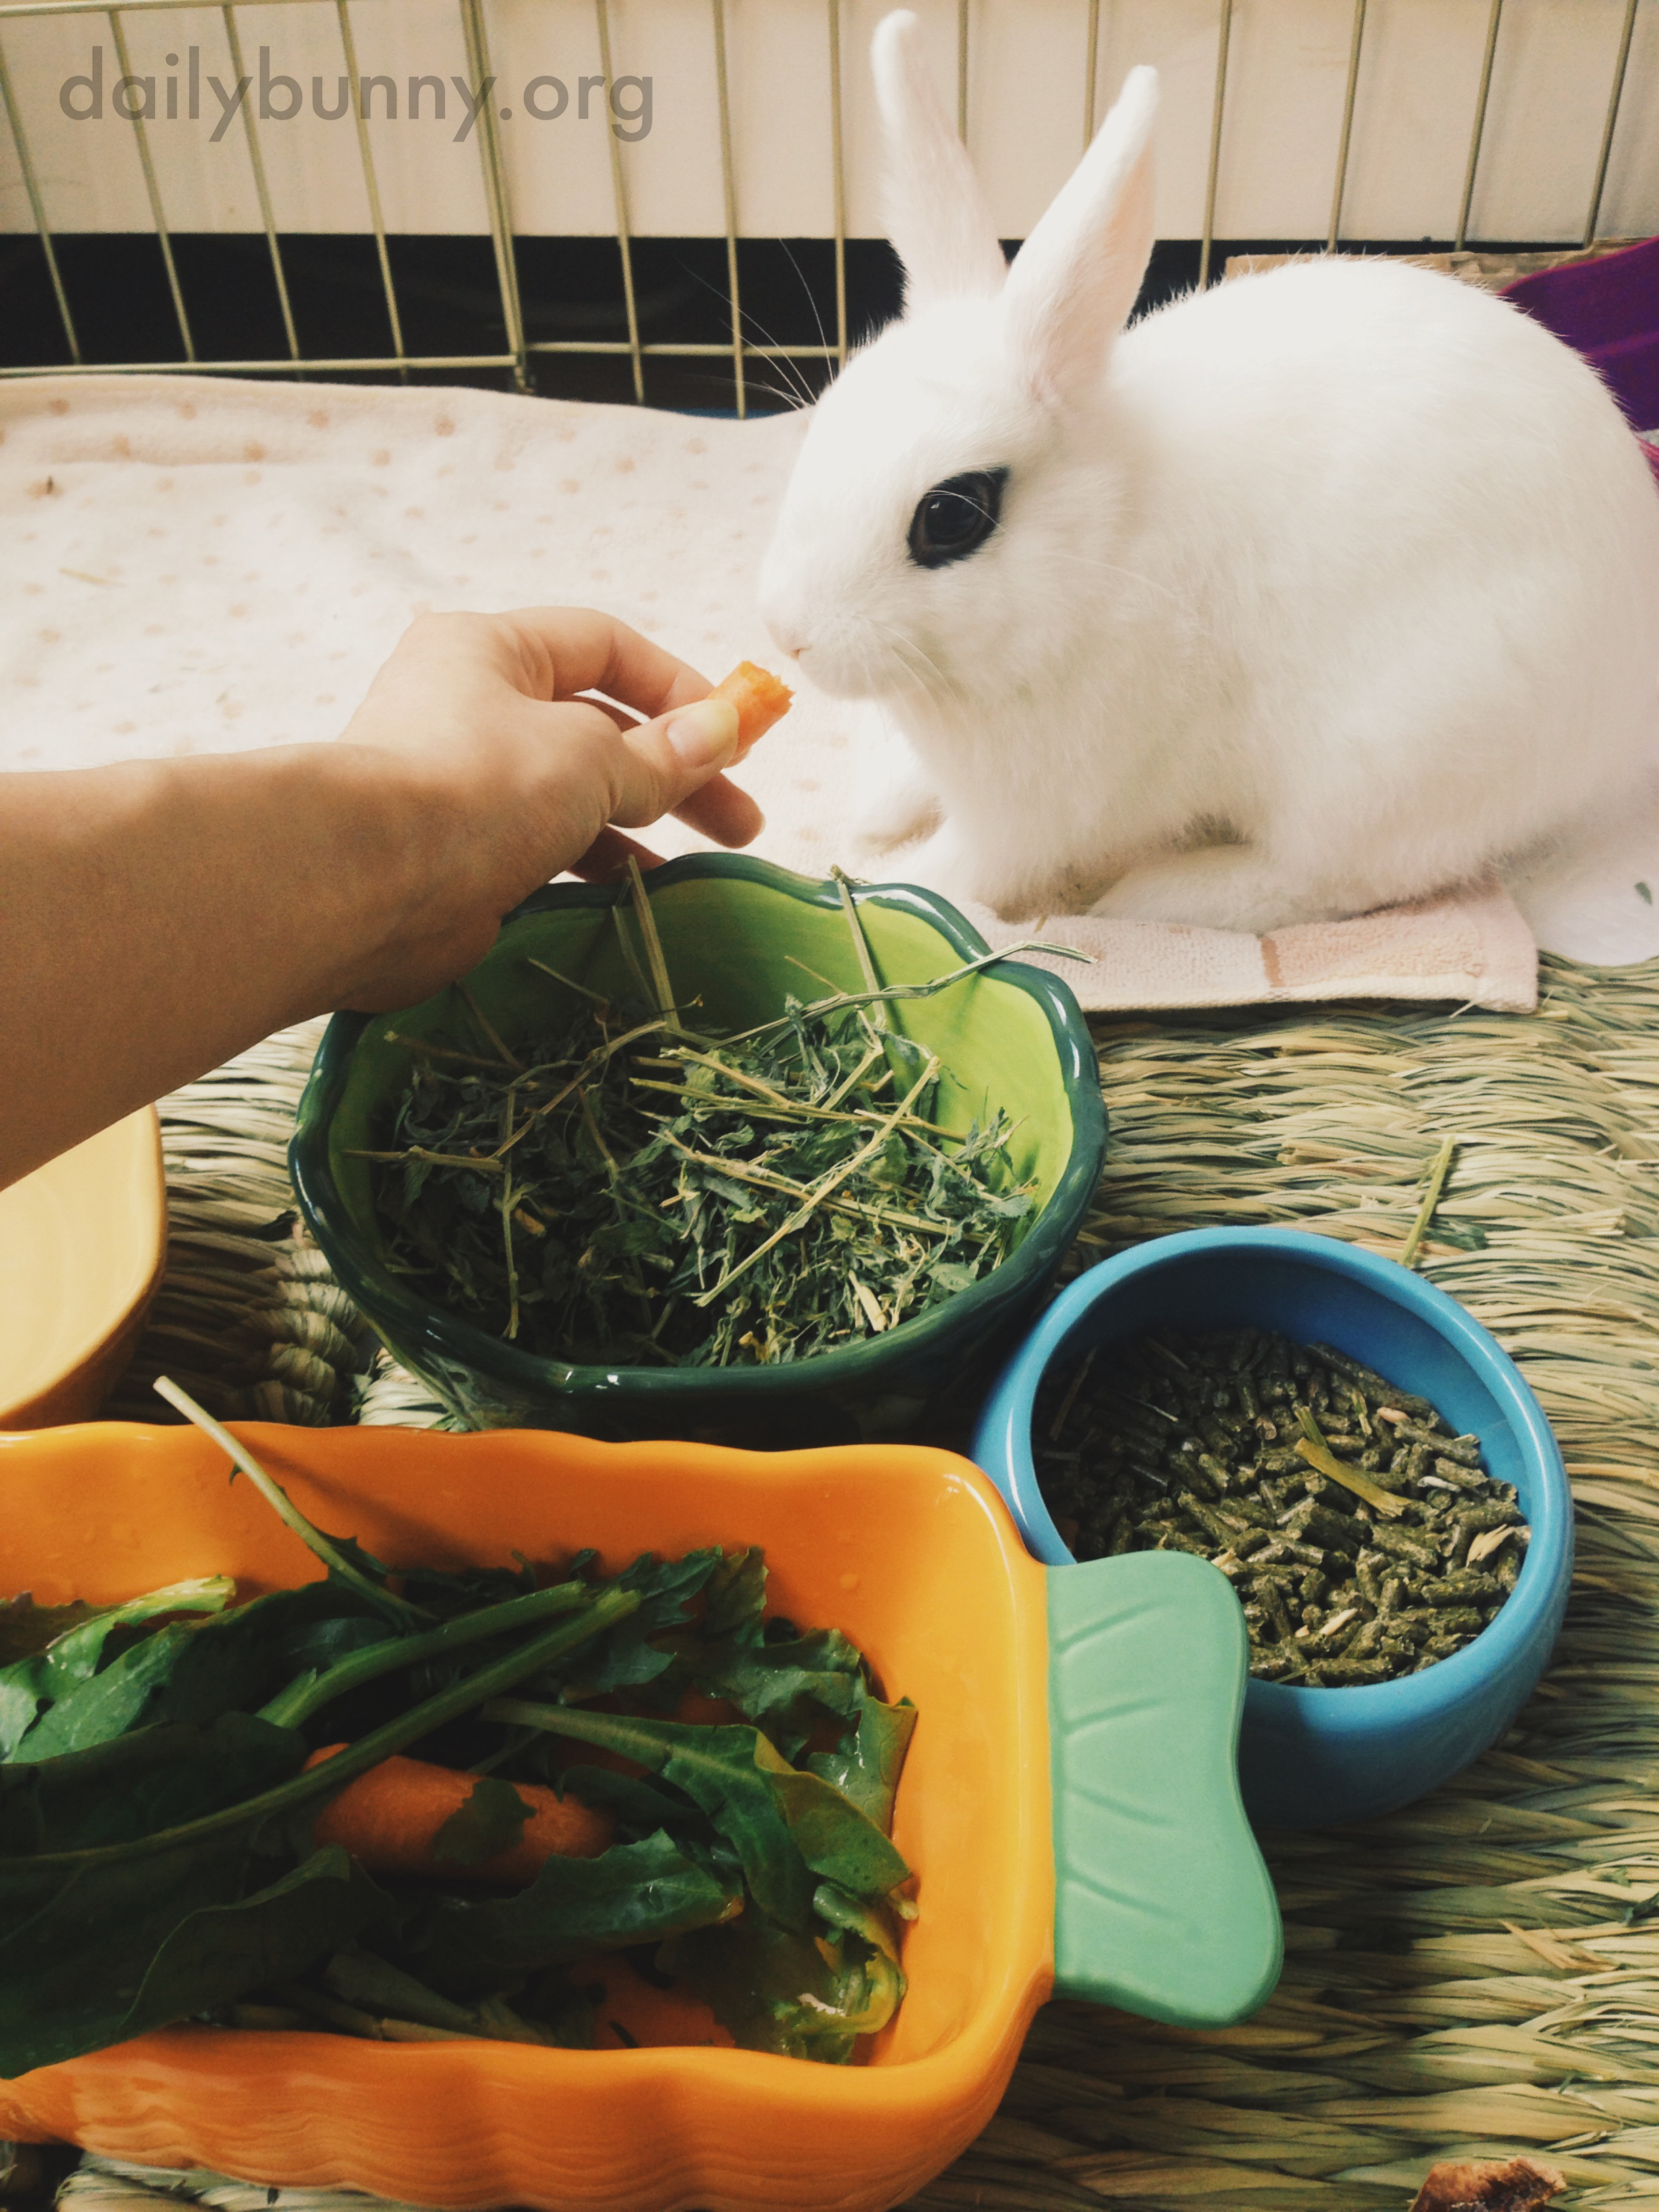 Bunny Tastes Vegetables for the First Time